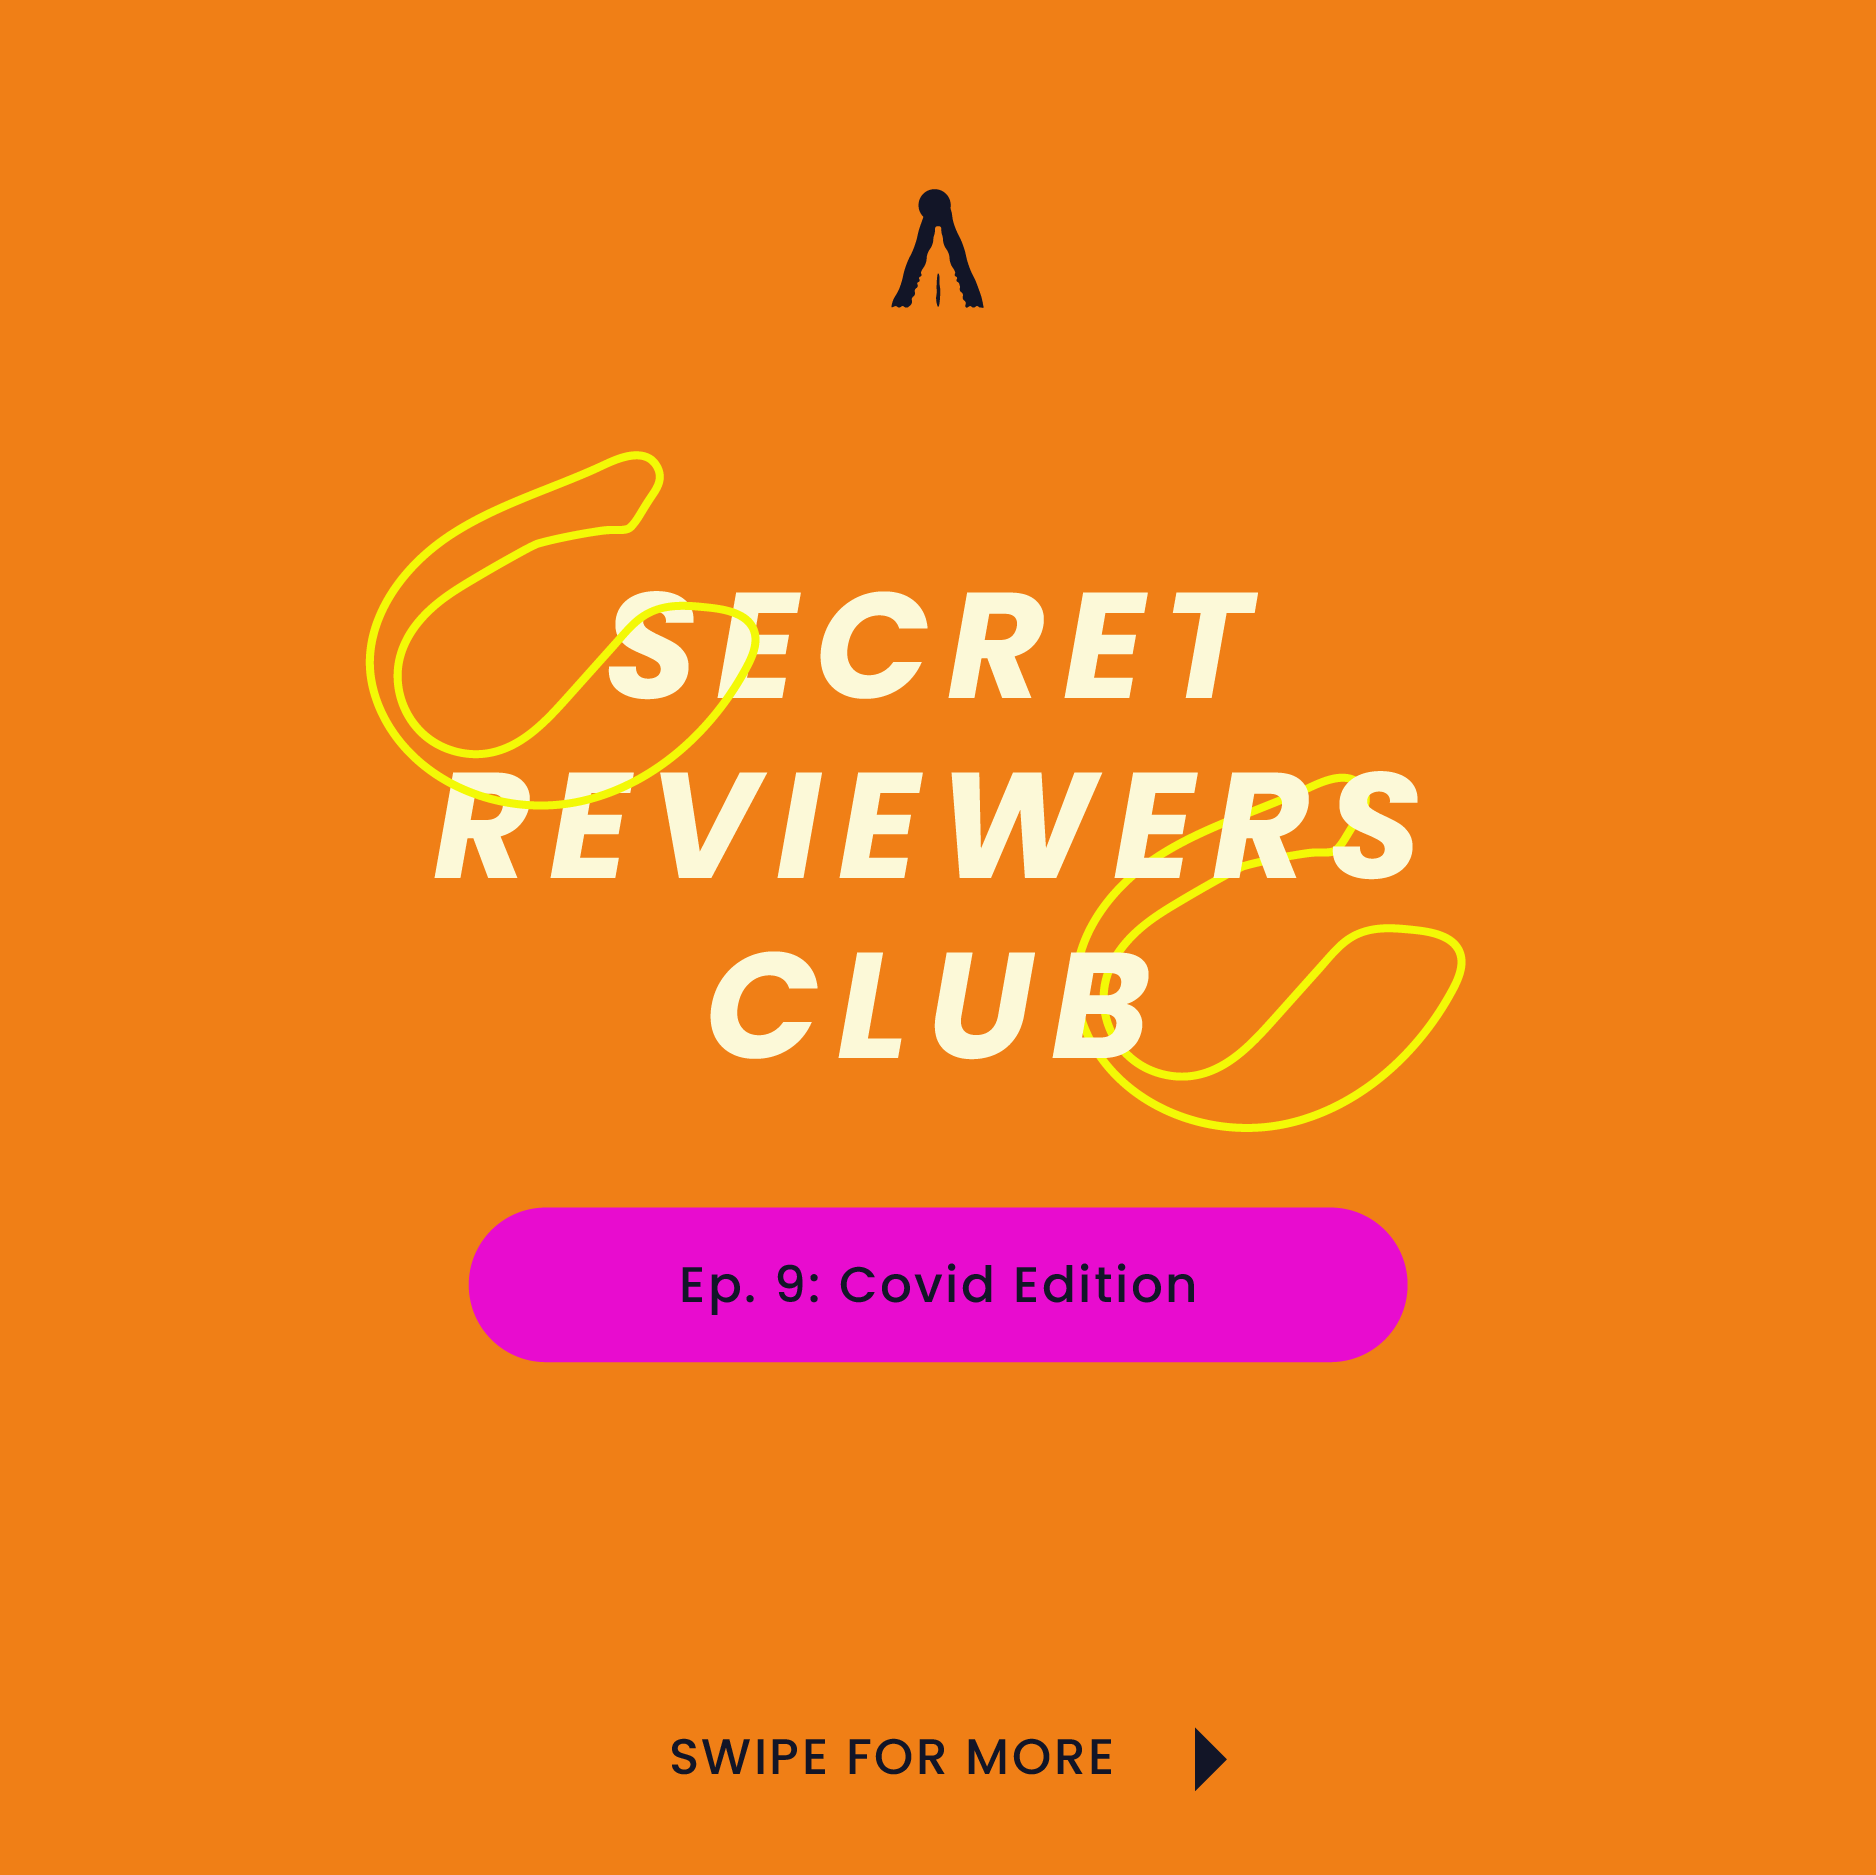 secret reviewers club covid edition